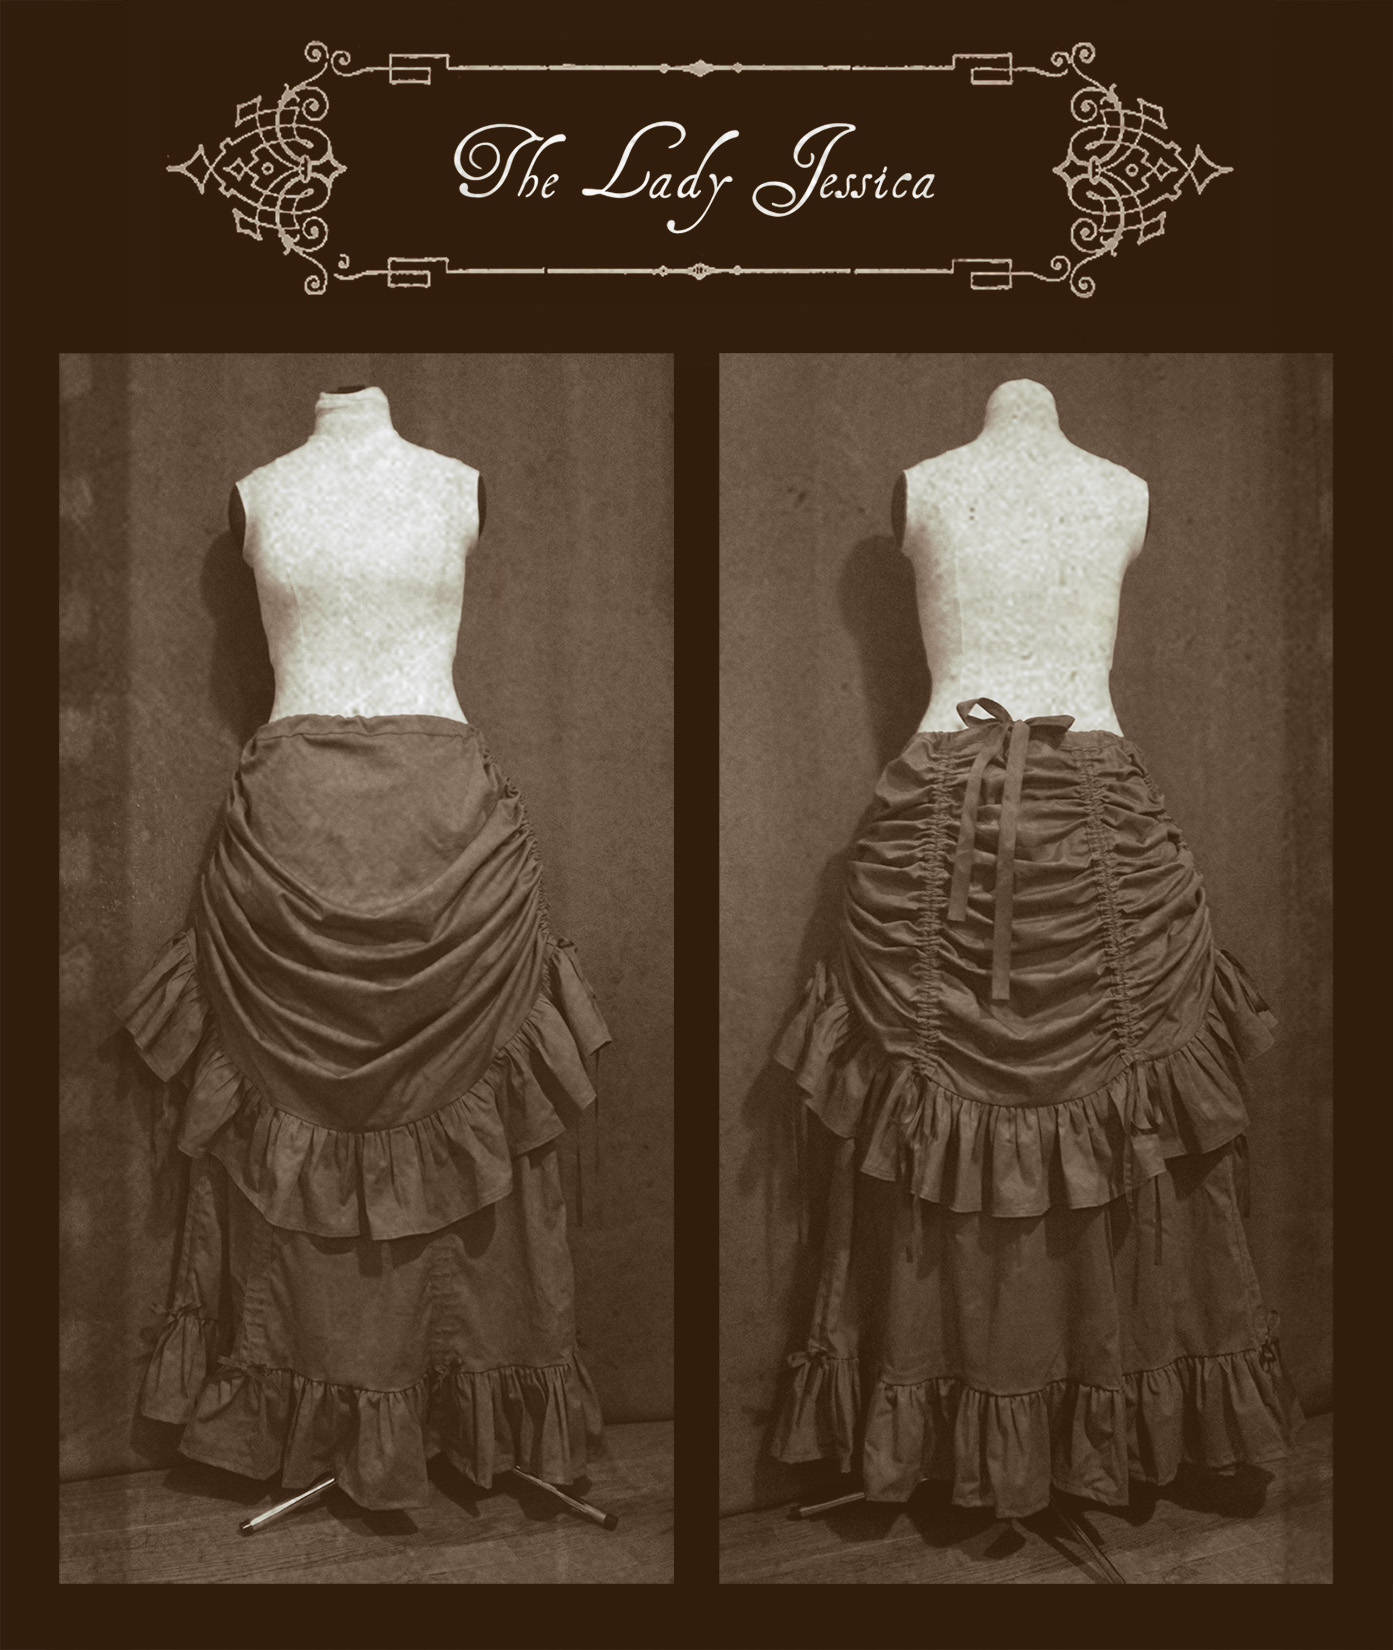 Two Bustle Skirts layered together for a vintage Victorian look!